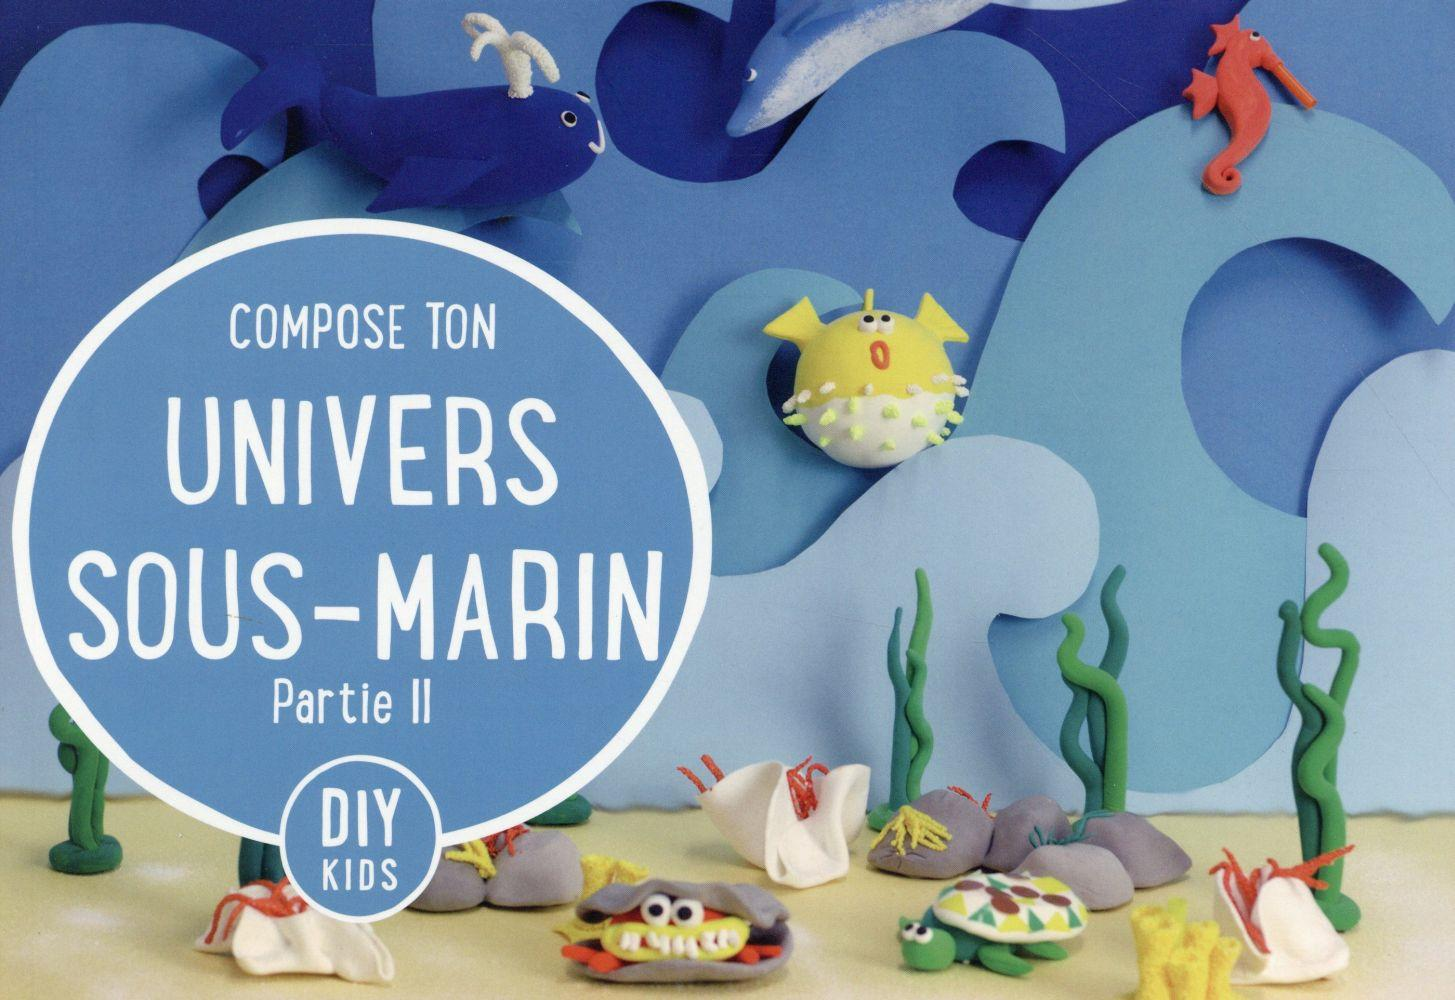 Compose ton univers sous marin t.2  - Collectif